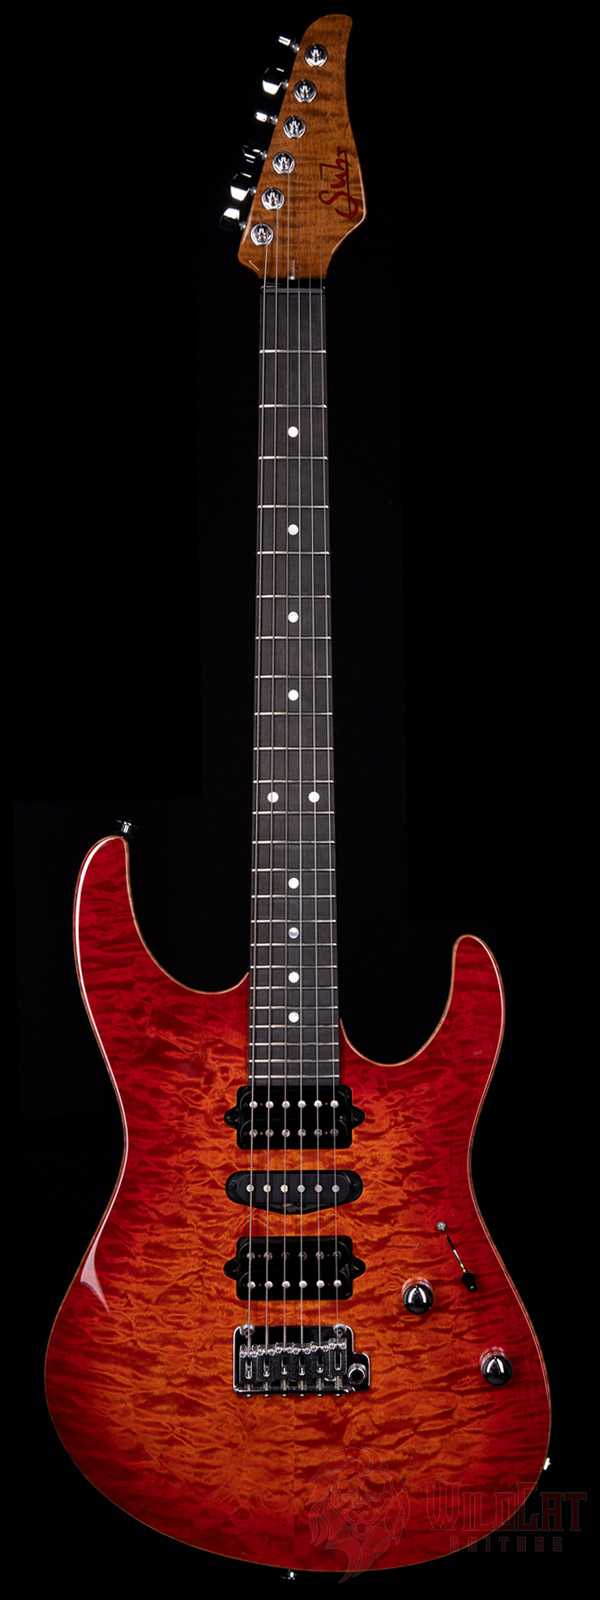 Suhr Custom Modern Fireburst Quilt Maple Top Roasted Flame Maple Neck